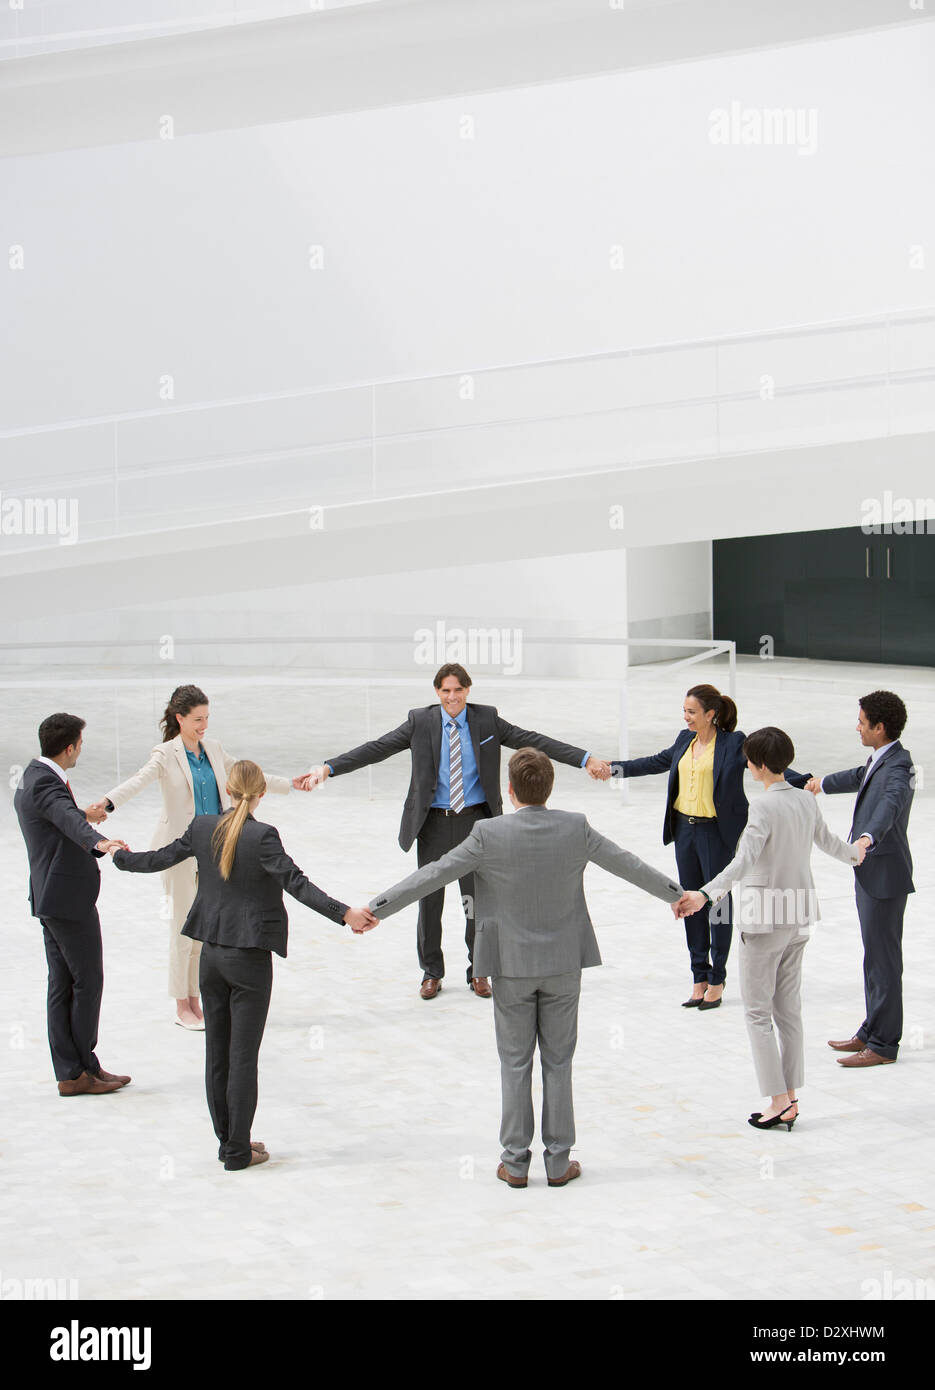 Business people holding hands in circle - Stock Image